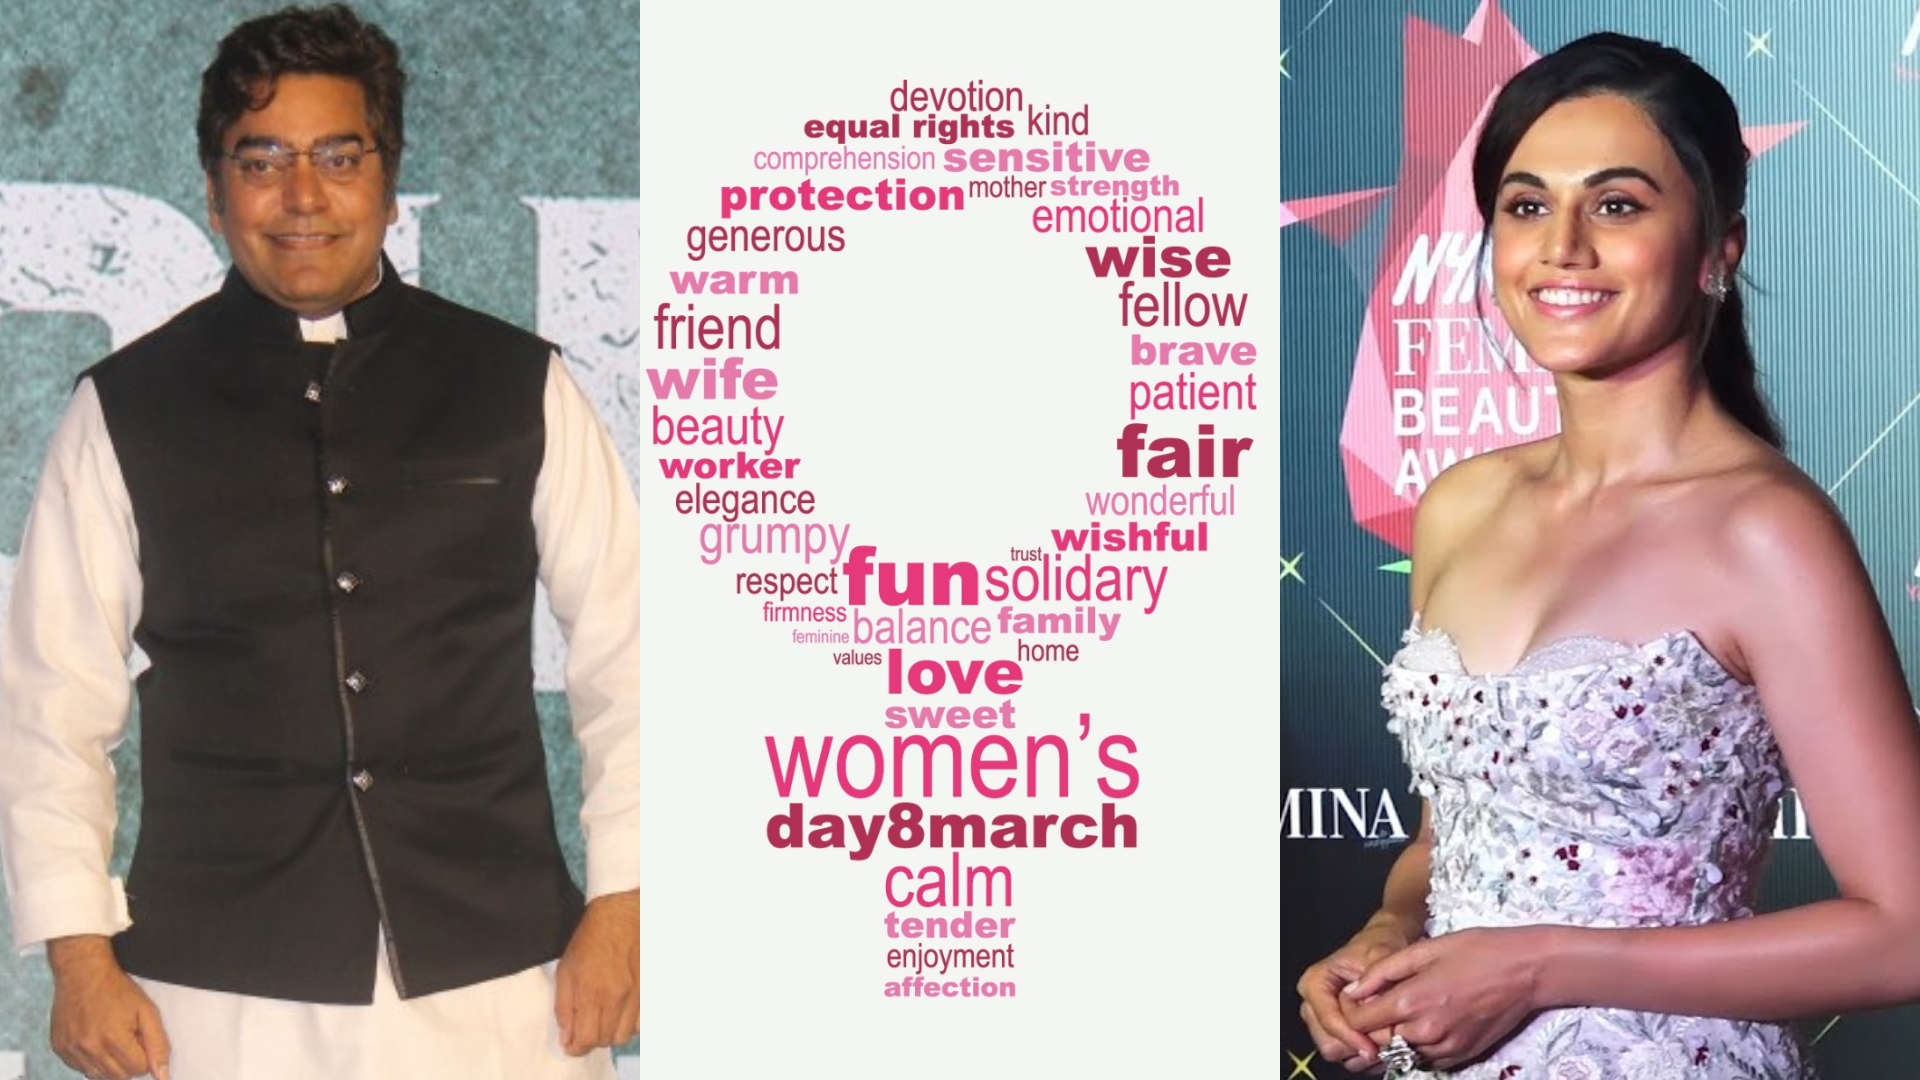 Women's Day 2019 | Taapsee Pannu, Ashutosh Rana and others on the importance of celebrating women